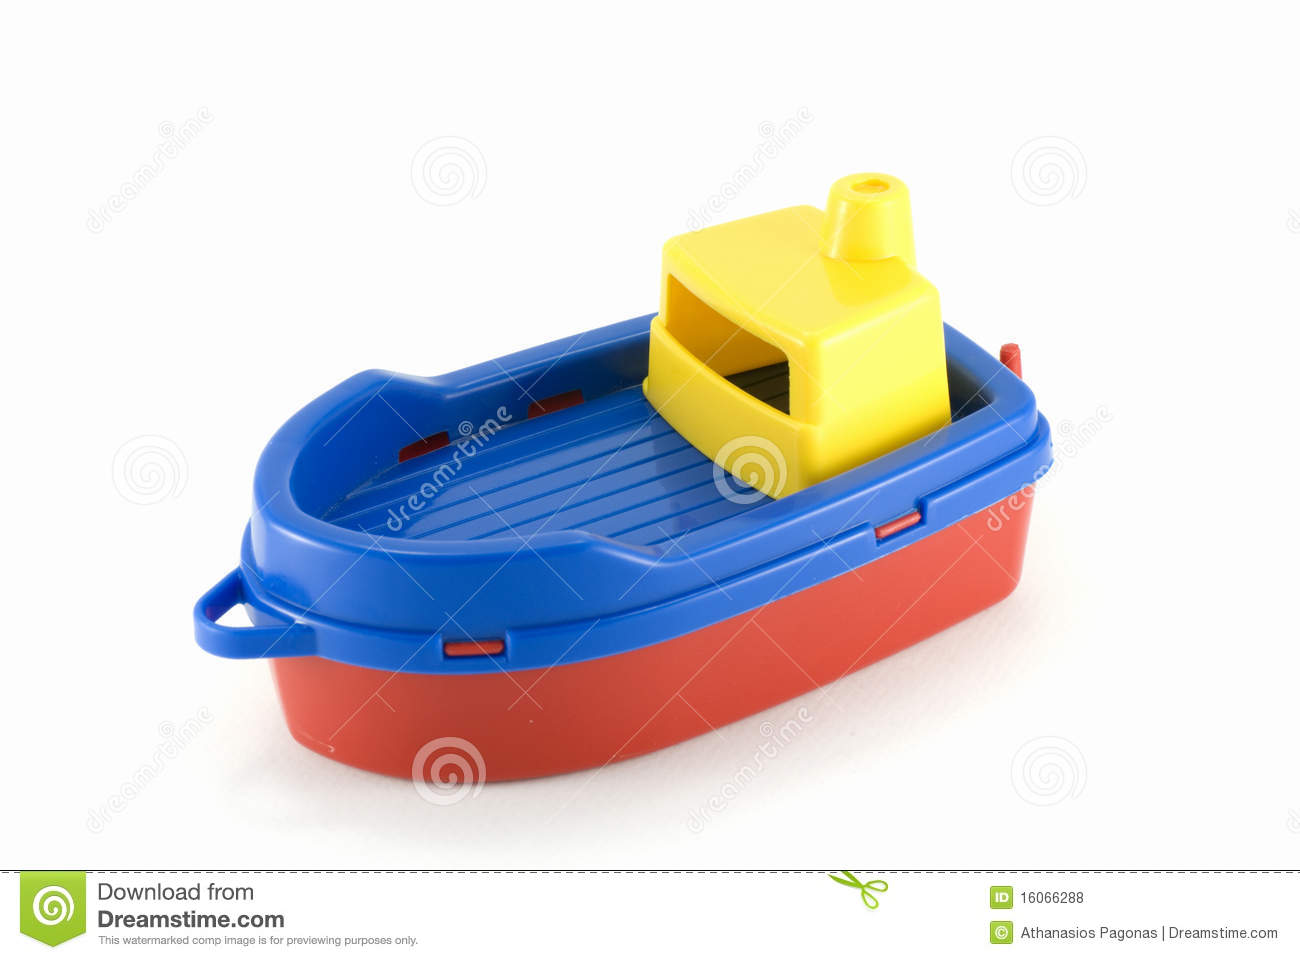 Plastic Boat Toy Royalty Free Stock Photos - Image: 16066288